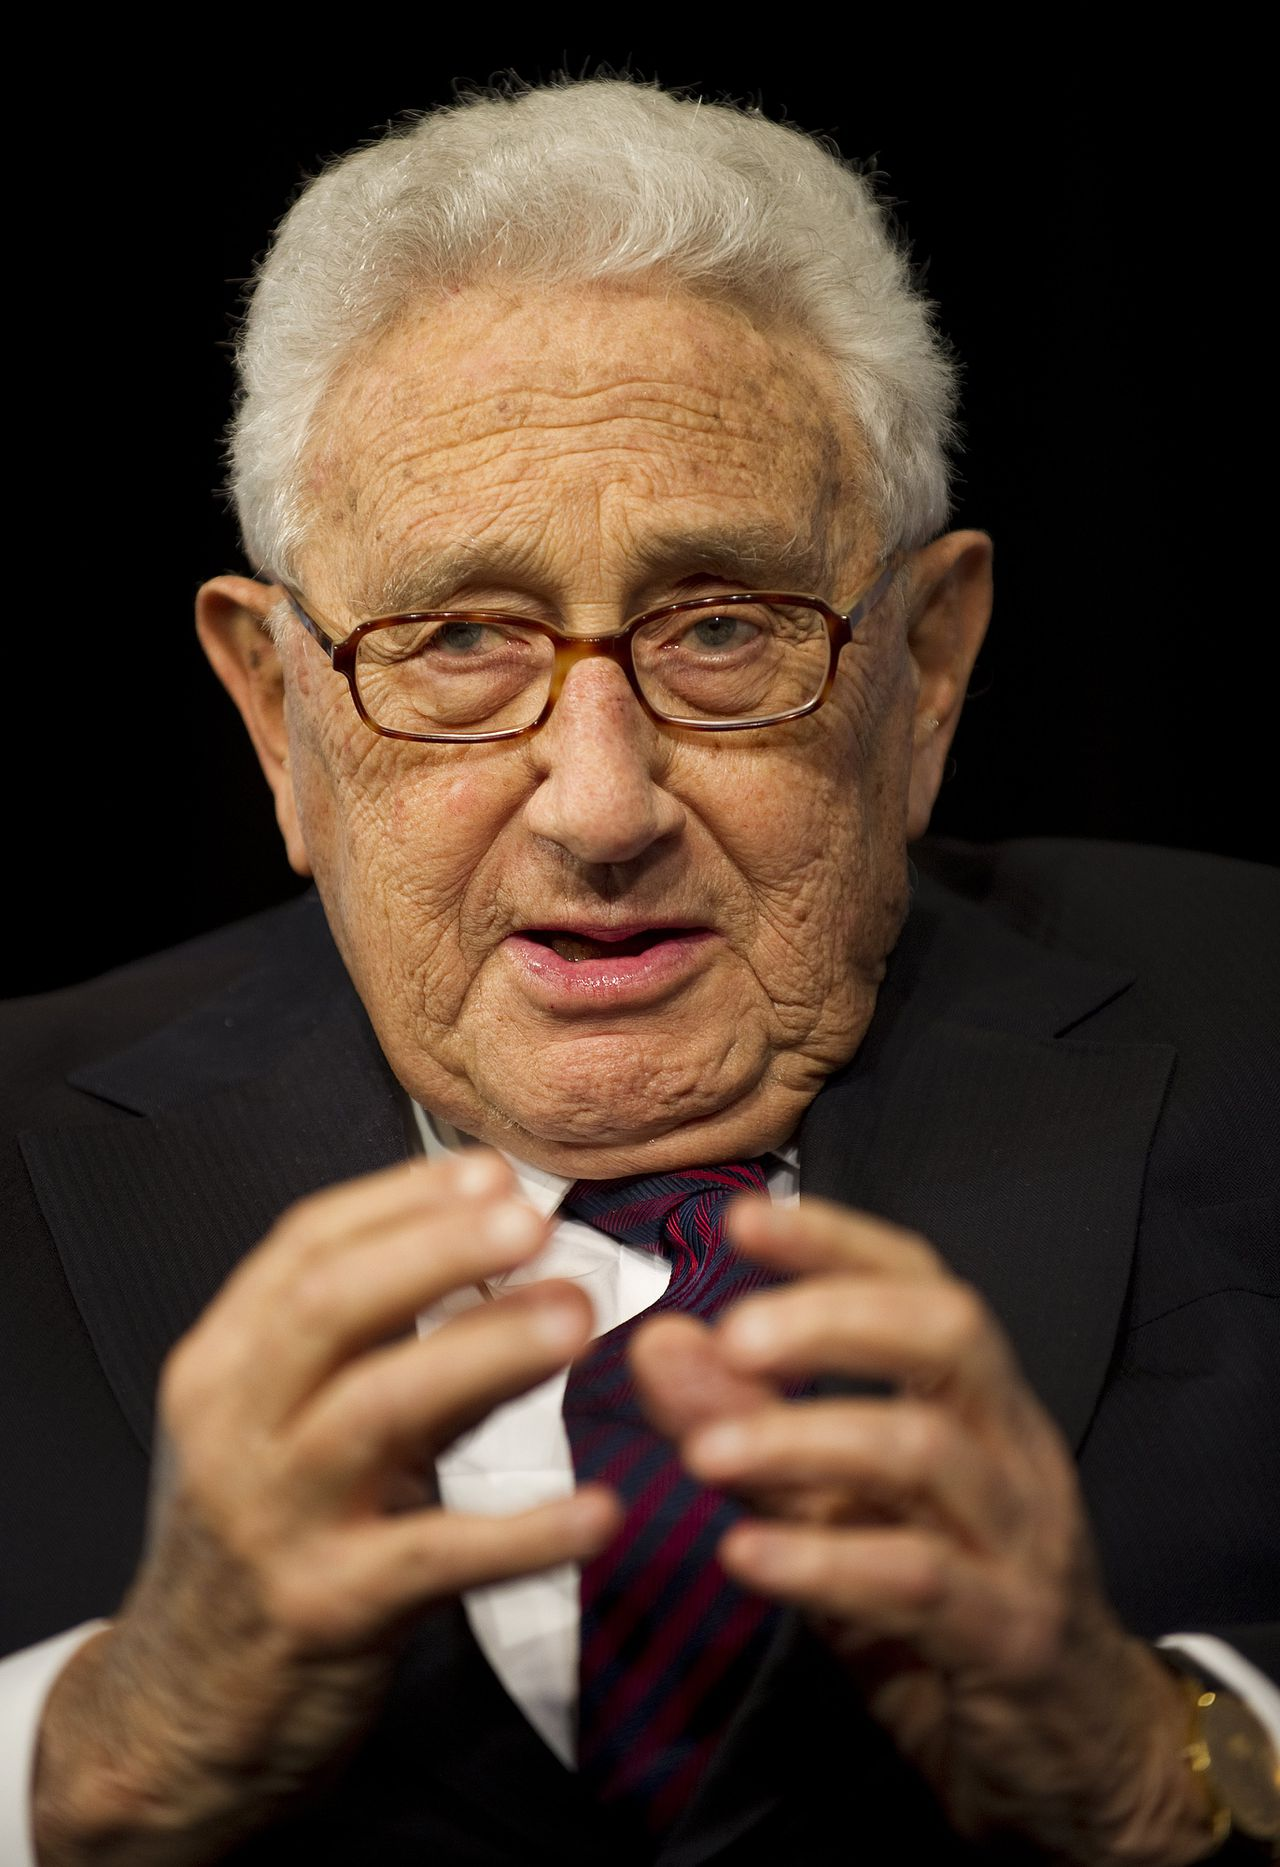 Former Secretary of State Henry Kissinger speaks during the 2011 Washington Ideas Forum at the Newseum in Washington, DC, October 6, 2011. AFP PHOTO/Jim WATSON